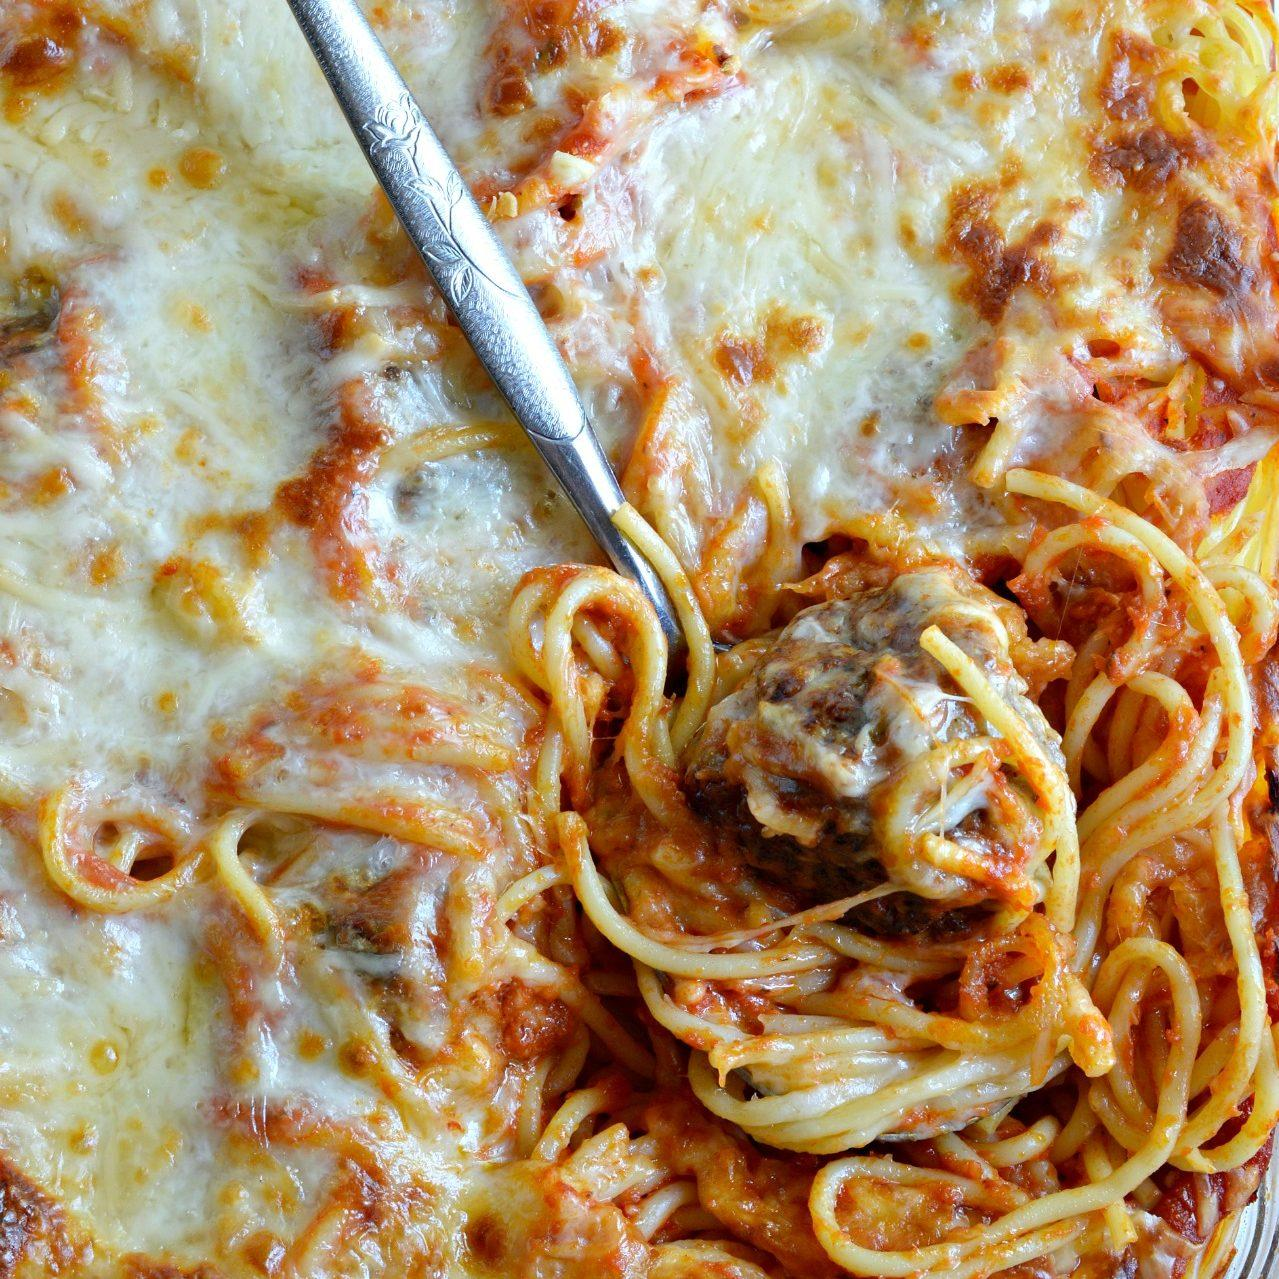 Baked Spaghetti and Meatballs Recipe